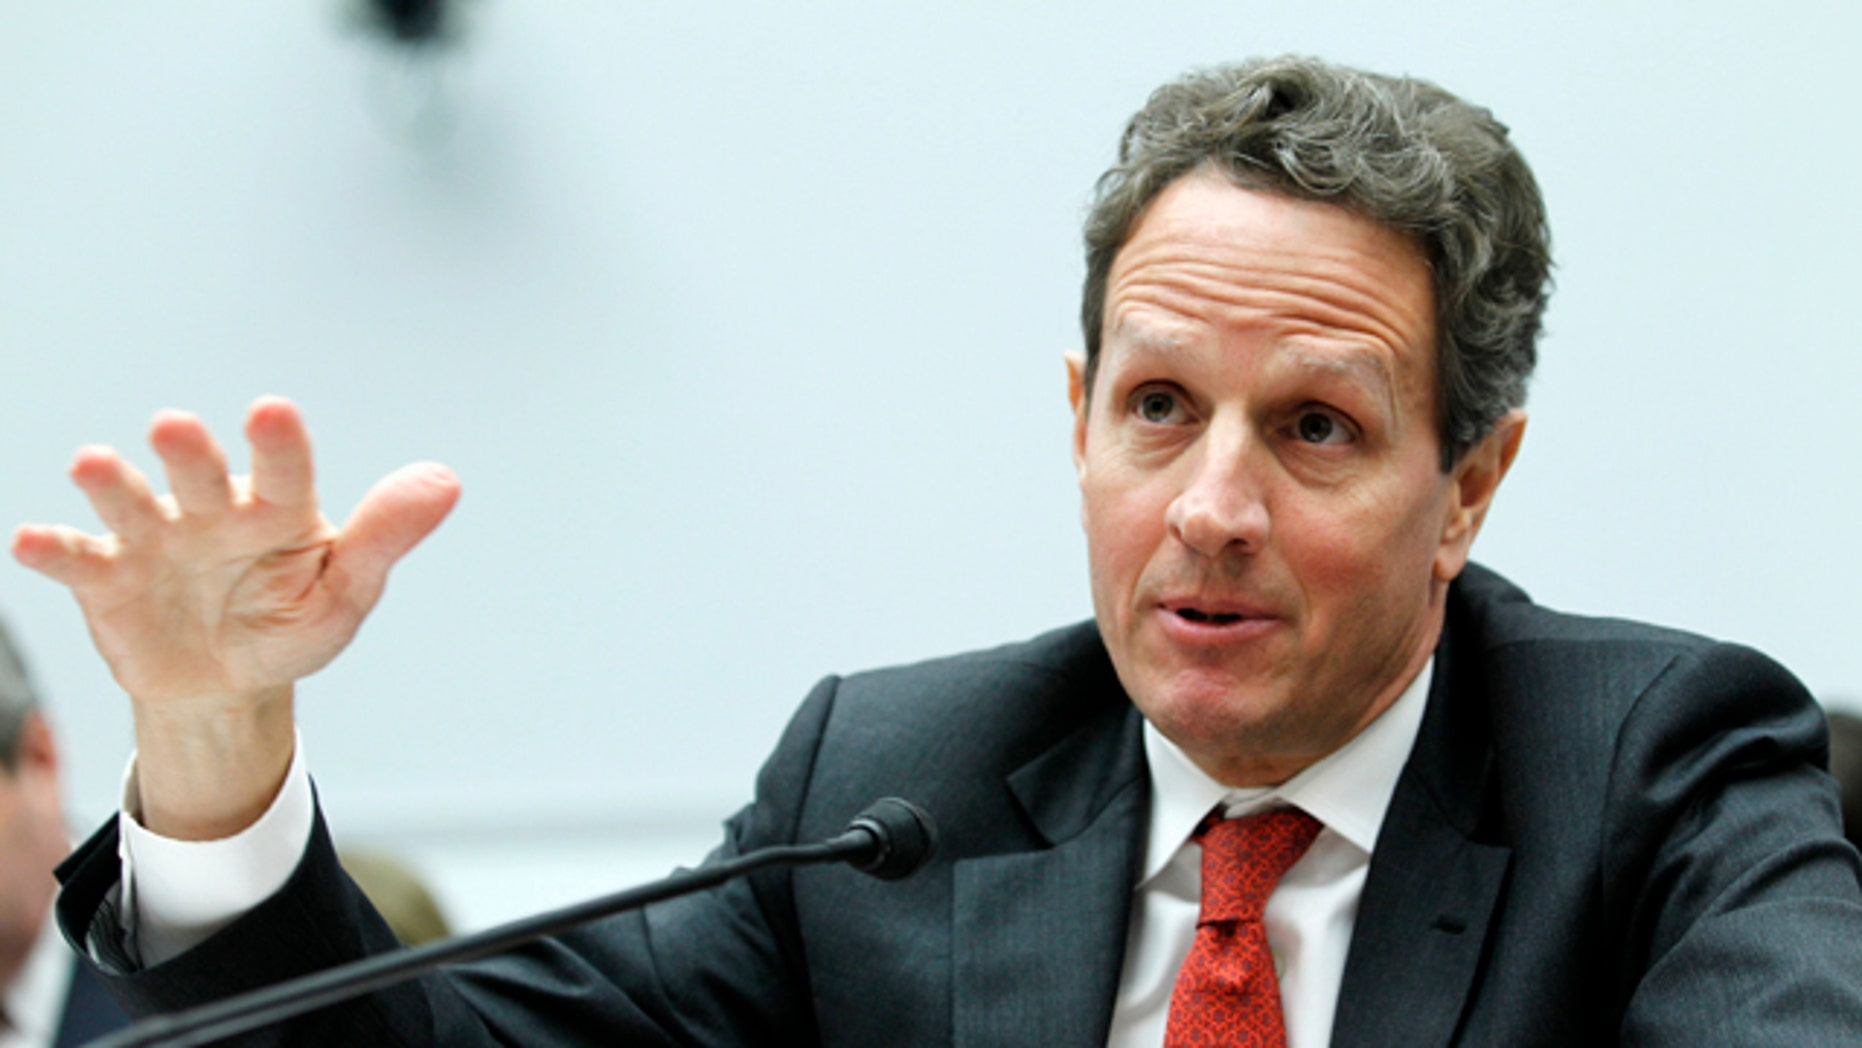 March 1: Treasury Secretary Timothy Geithner testifies on Capitol Hill in Washington.